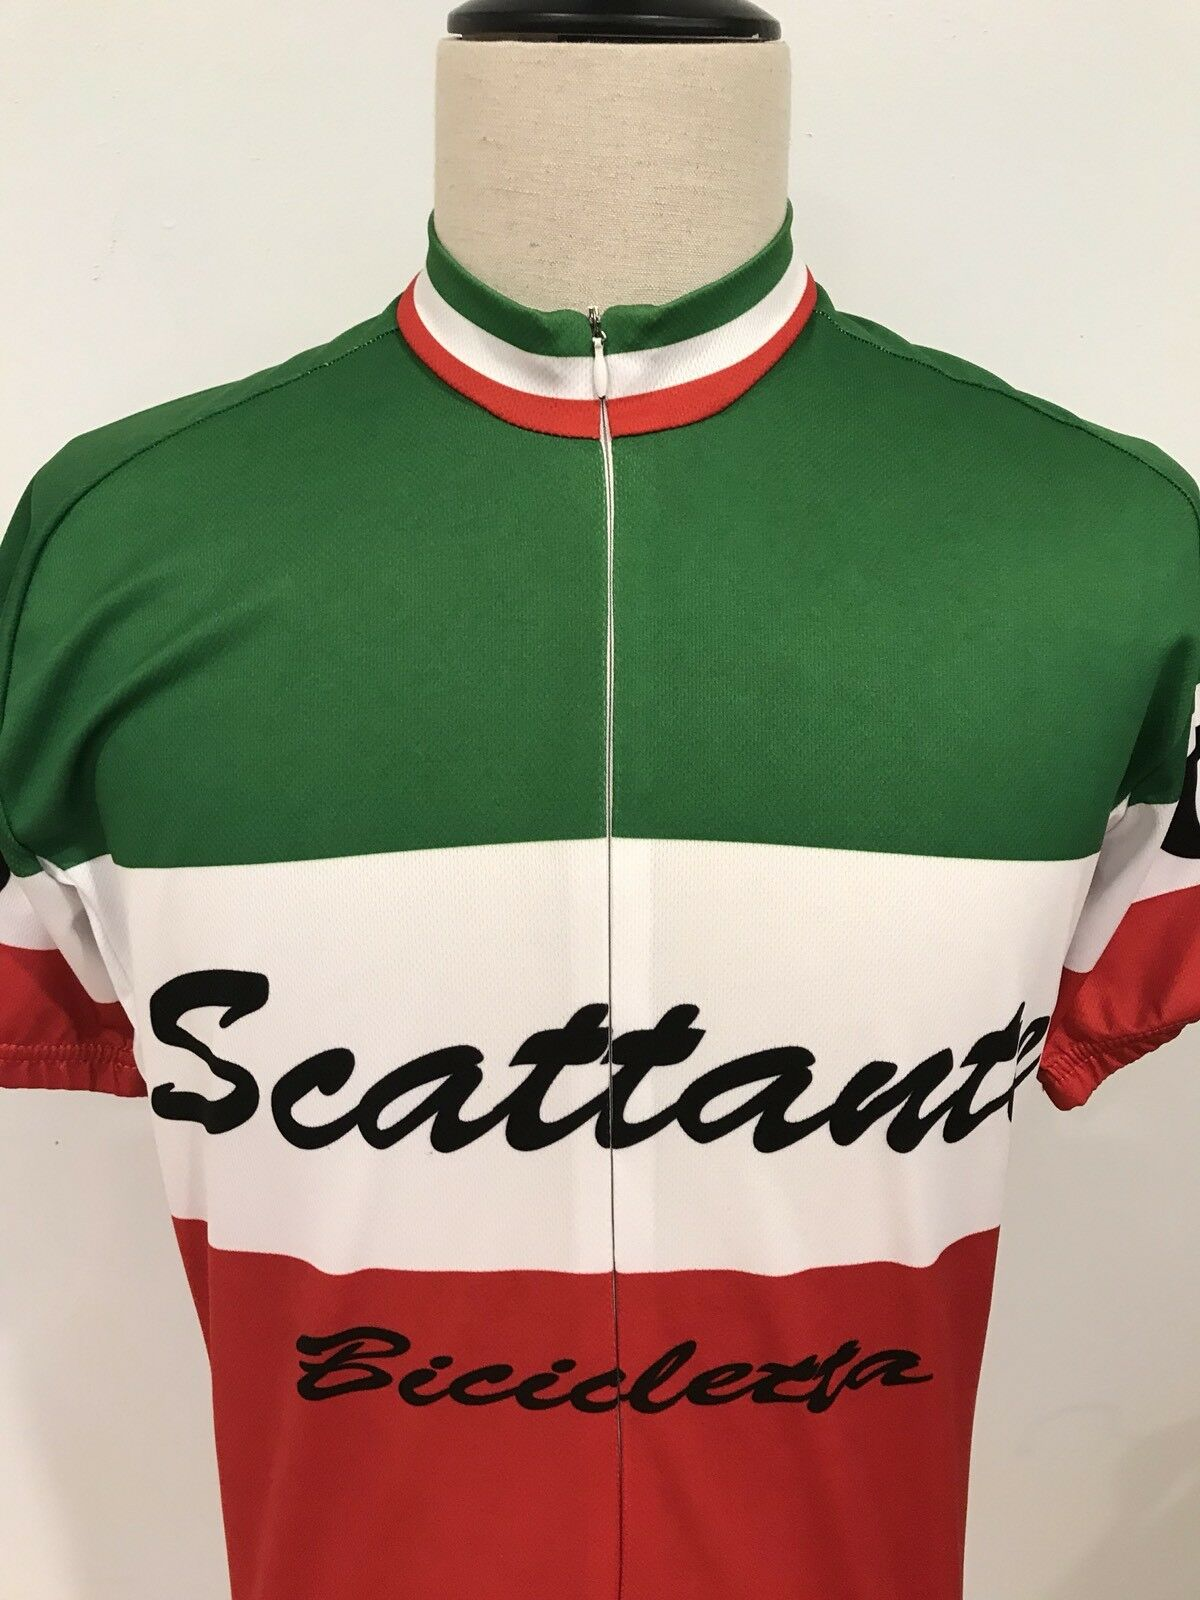 Scattante Mens Italian   Bike Bicycle Cycling Jersey Shirt Size XL  hot sales